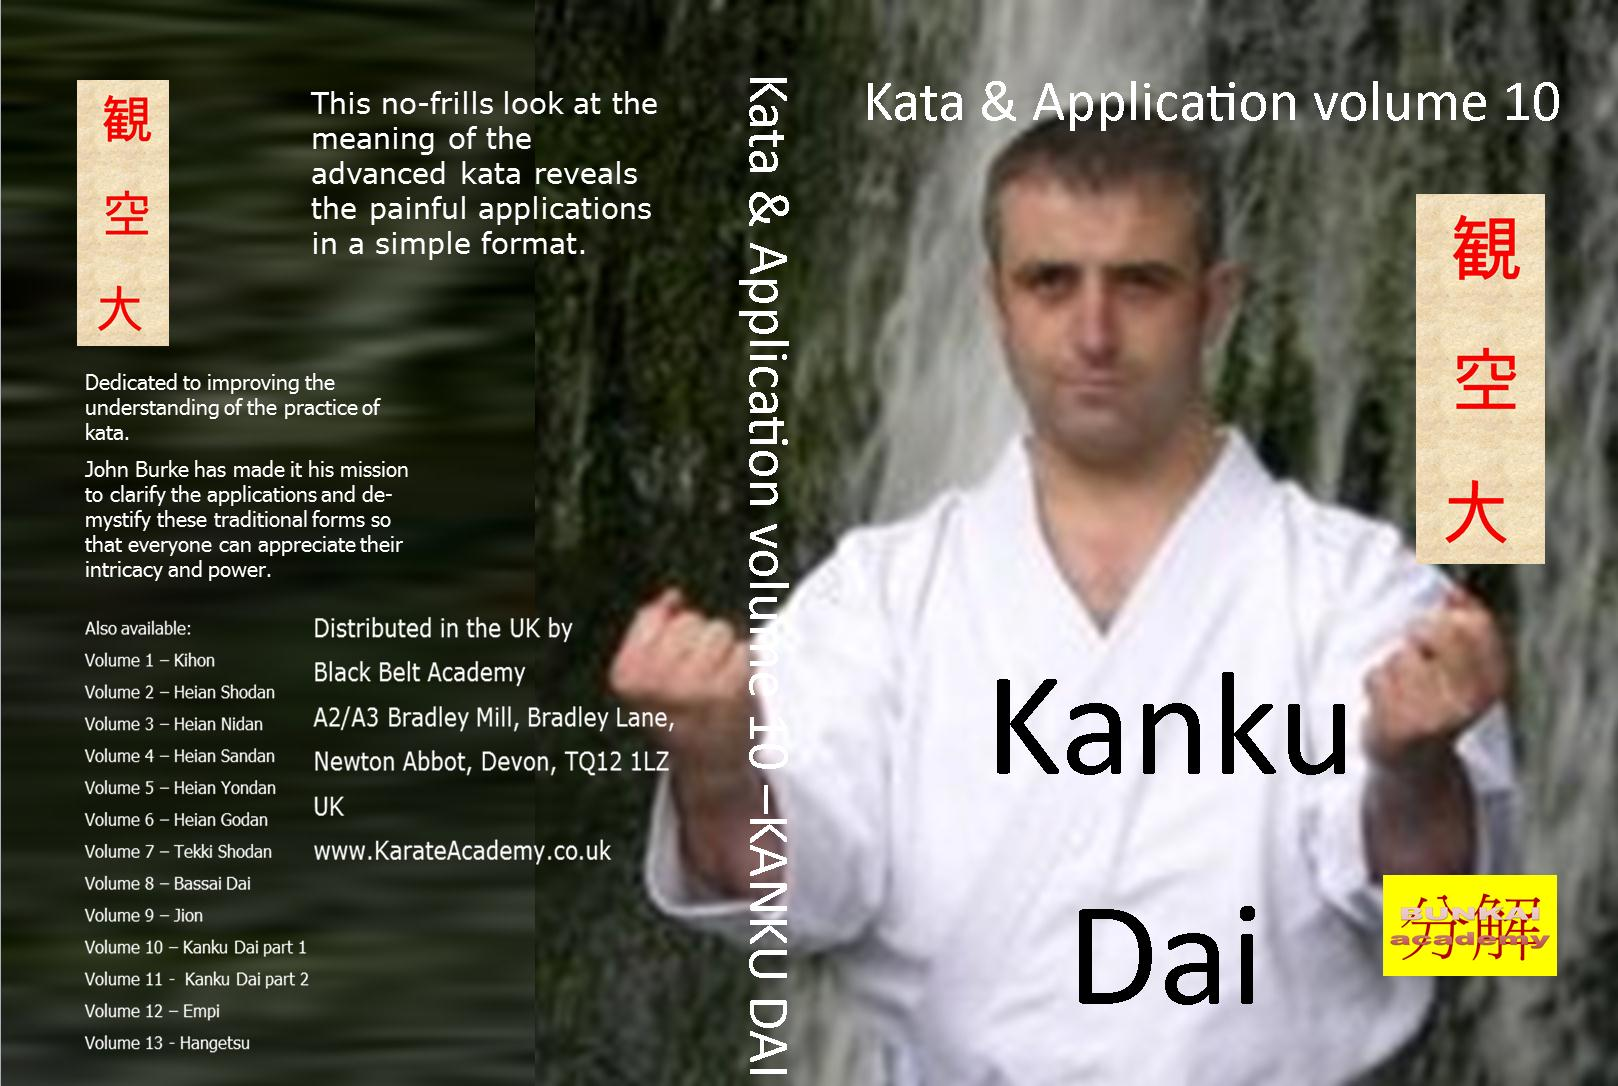 Kanku dai bunkai applications